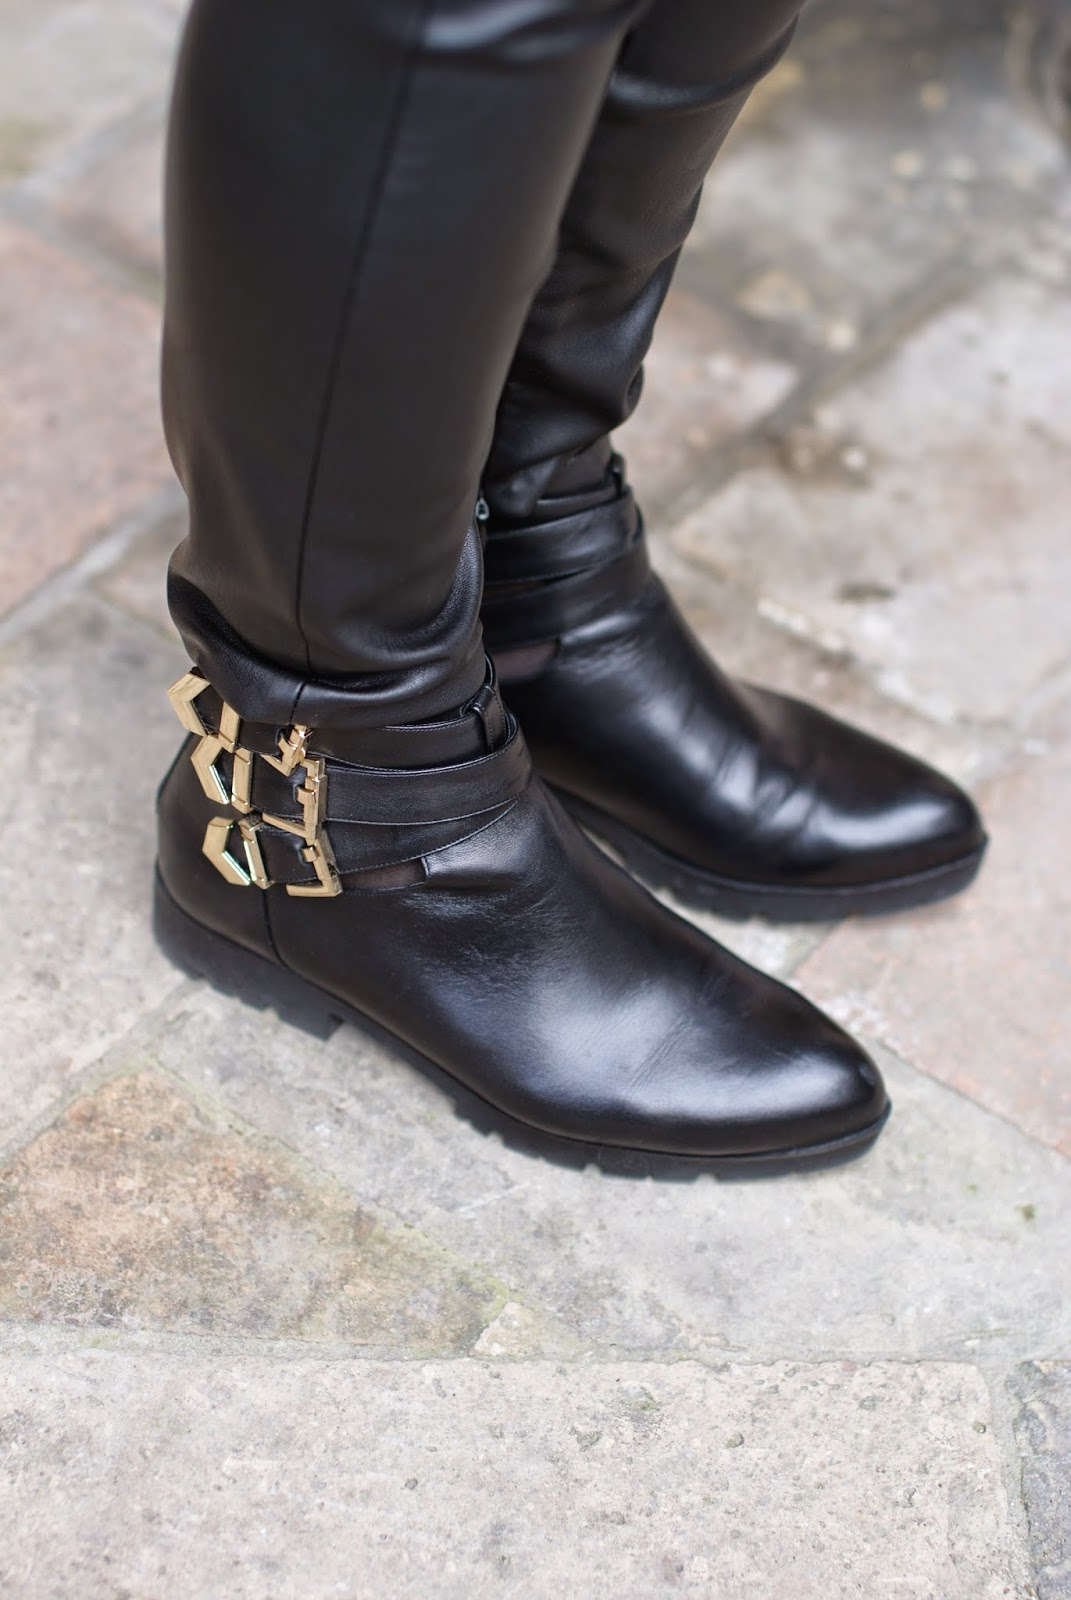 buckled boots, Albano scarpe, Fashion and Cookies, fashion blogger, fashion blog